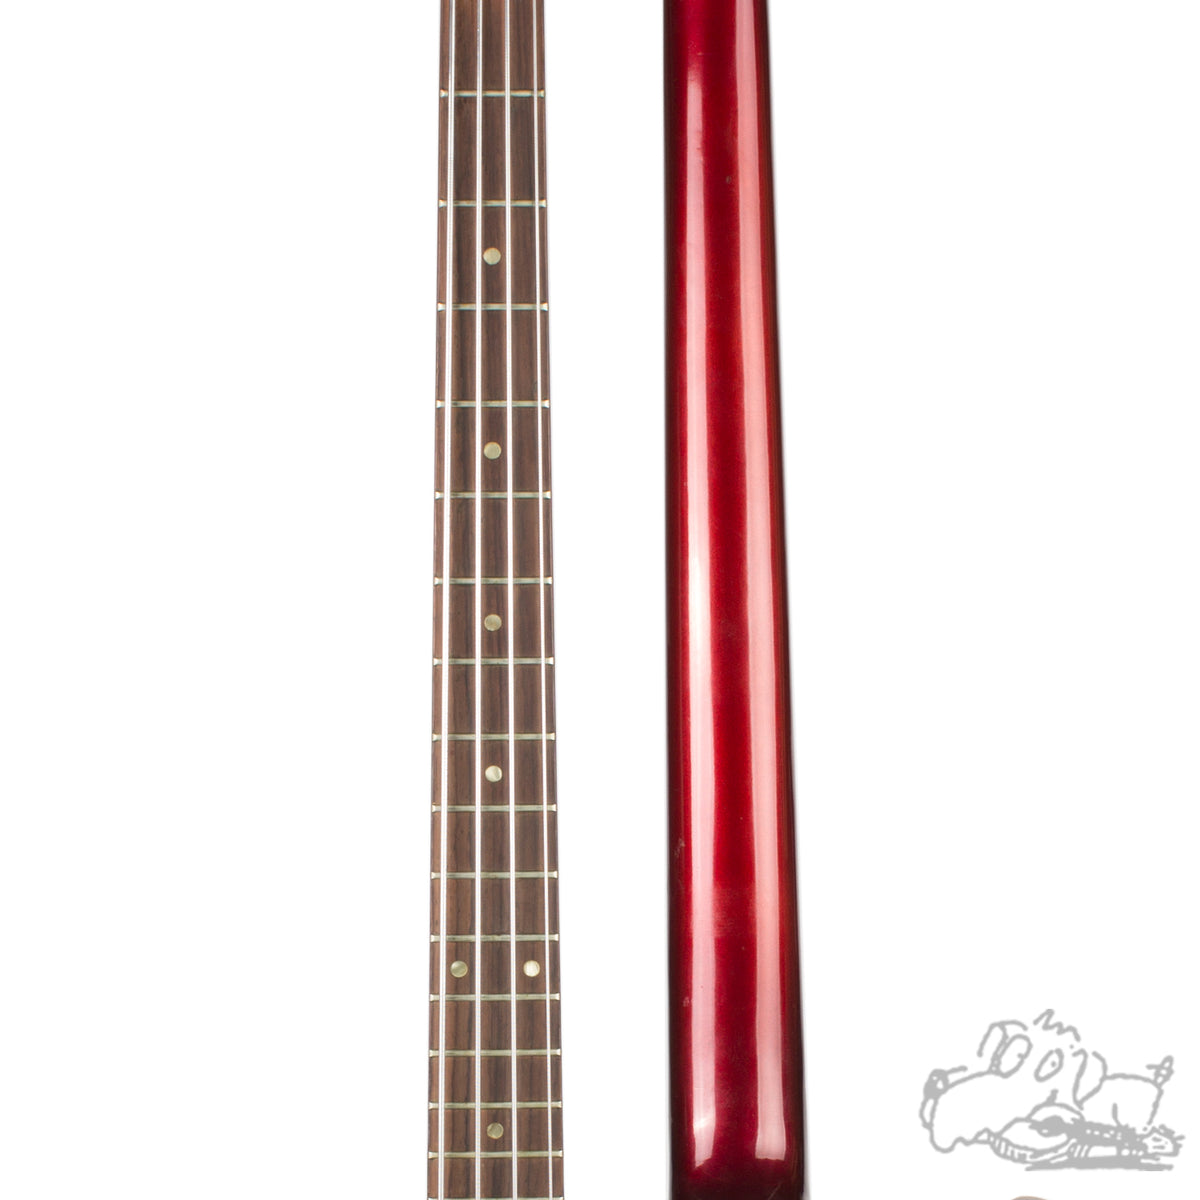 1966 Sparkling Burgundy Gibson EB-2 Electric Bass Guitar